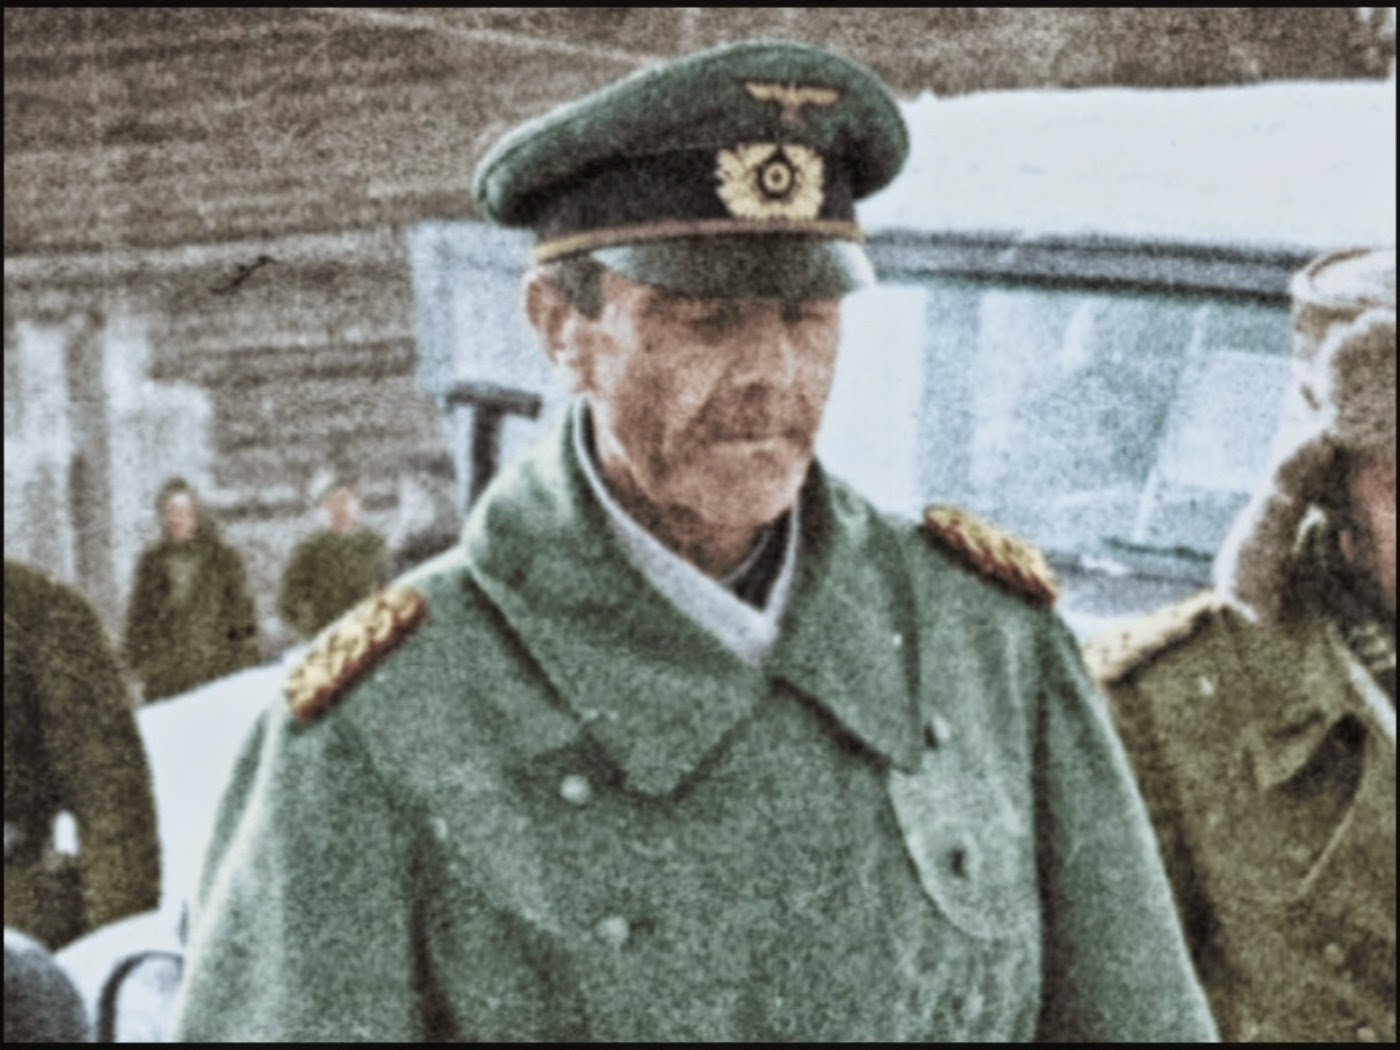 Generalfeldmarschall Friedrich Paulus surrenders to the Red Army